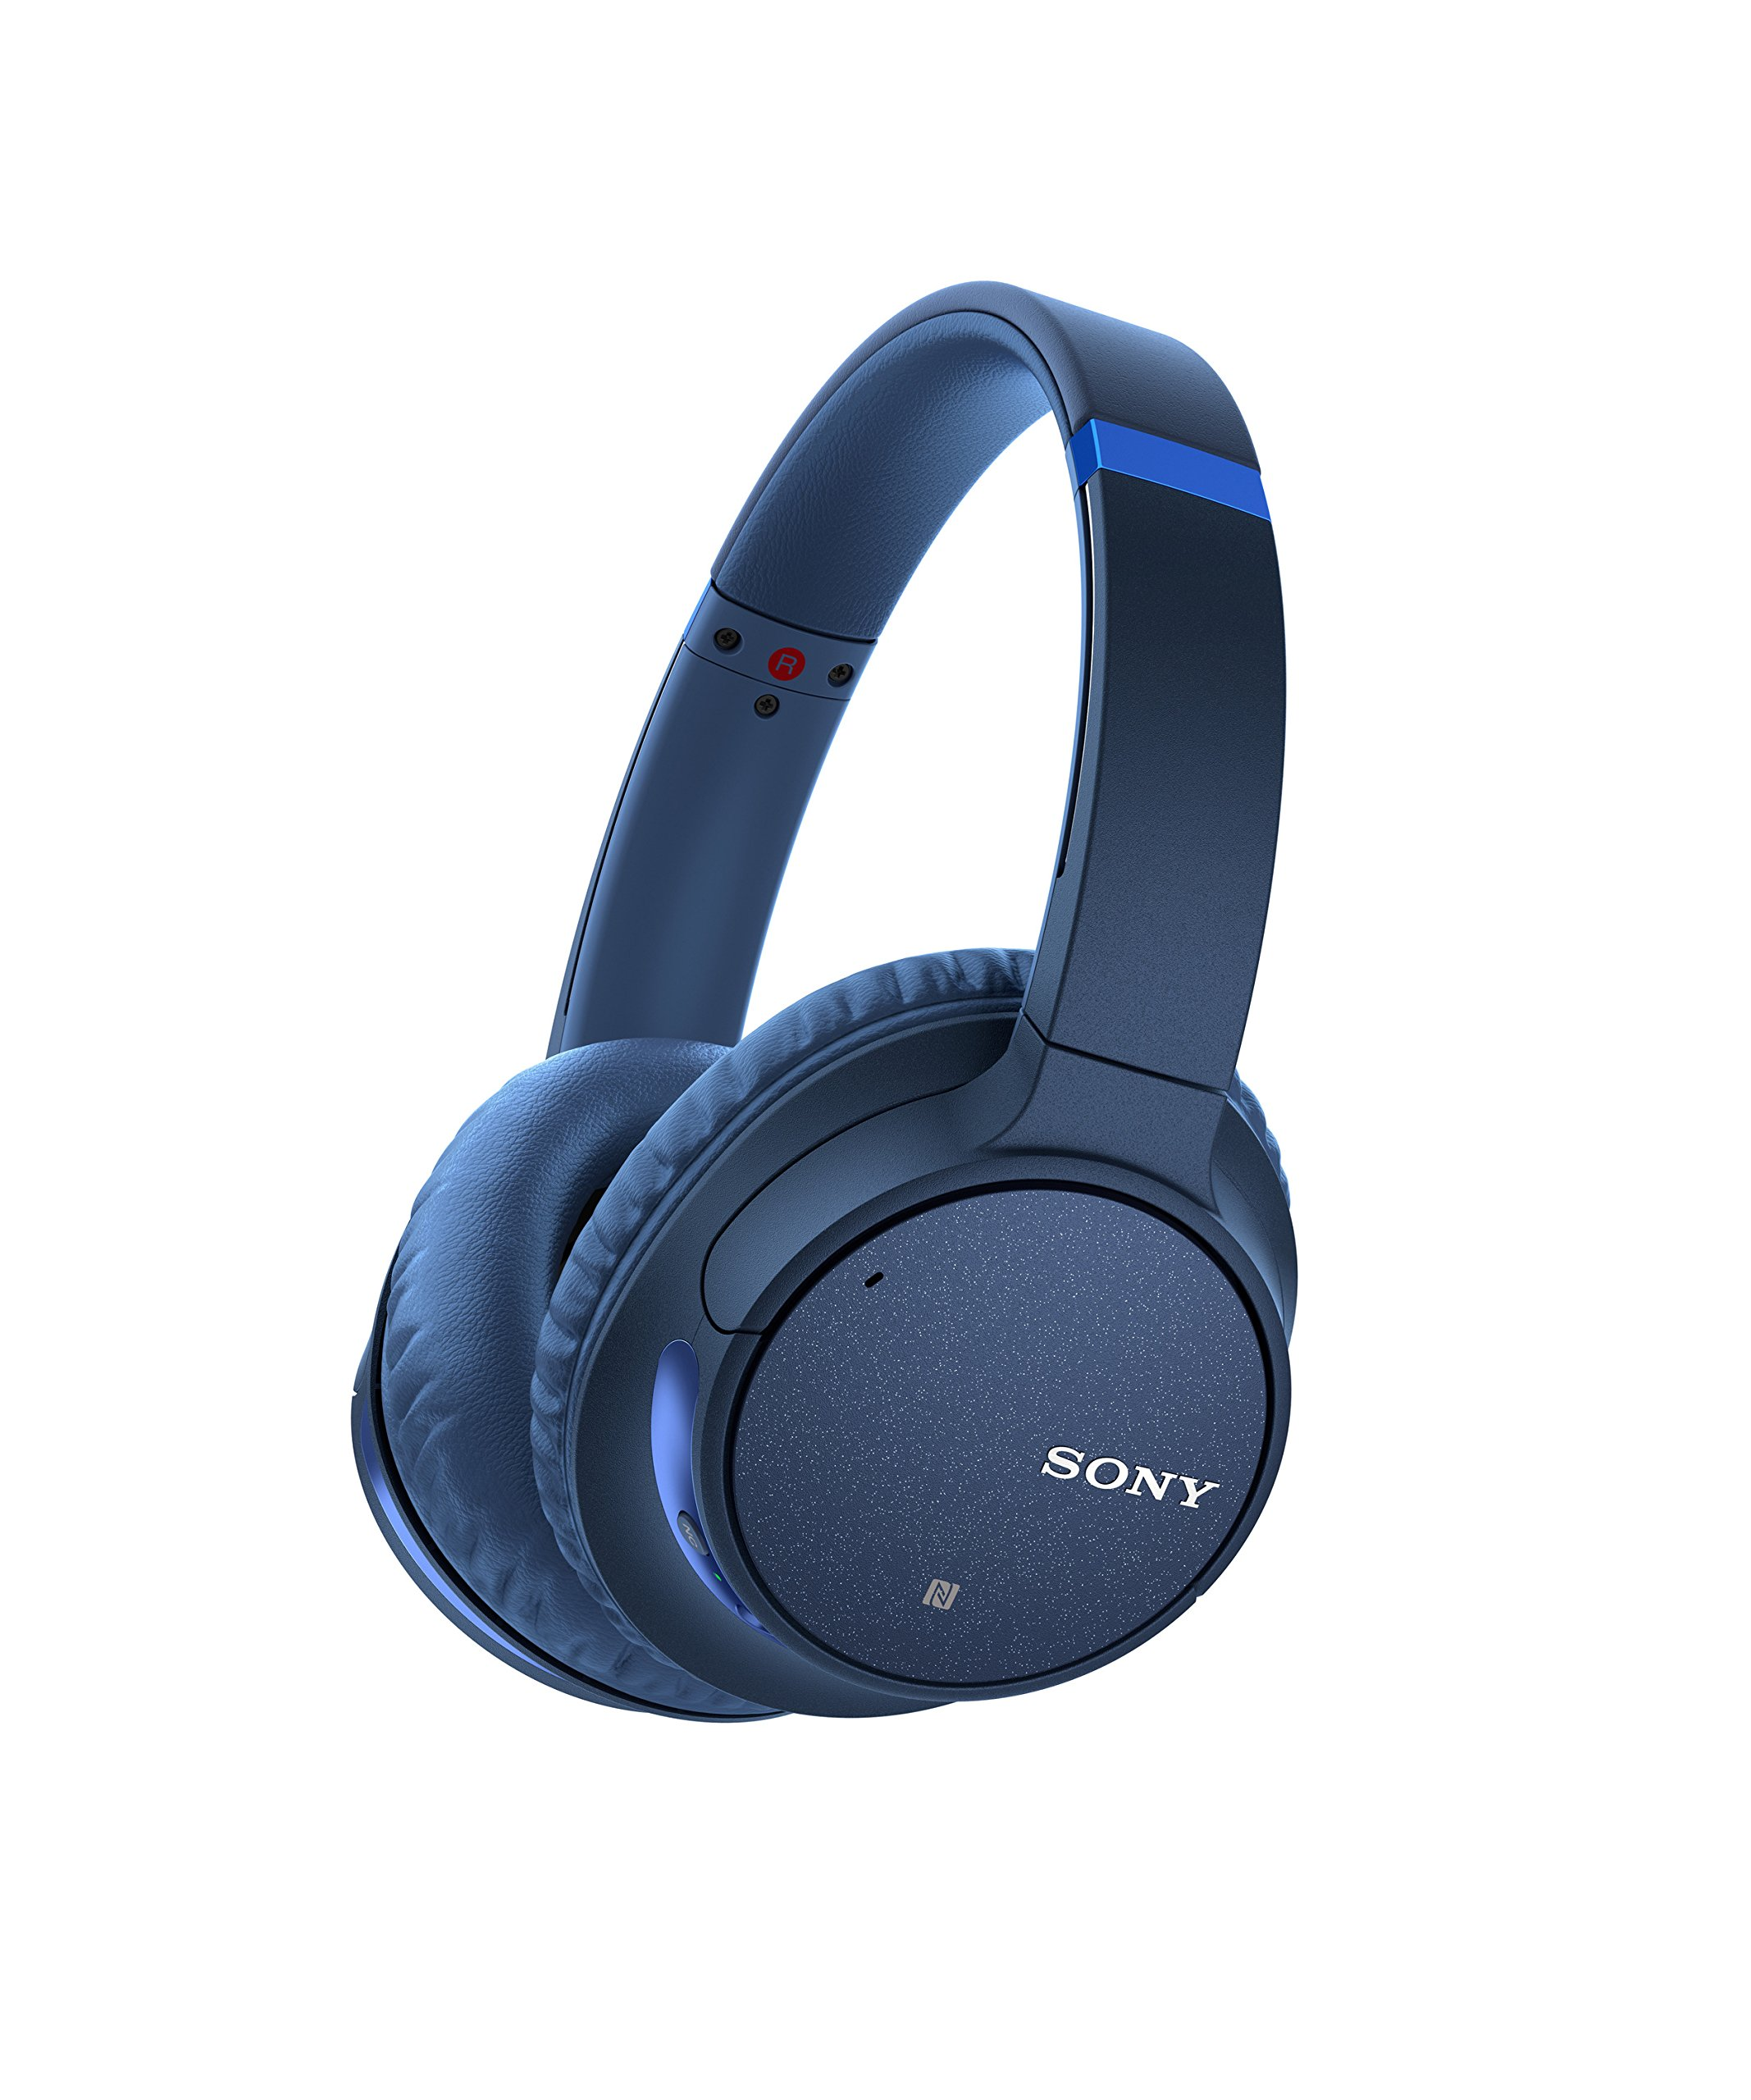 Sony Noise Cancelling Headphones WH-CH700N: Wireless Bluetooth Over the Ear Headphones with Mic and One Touch Control AINC Digital Noise Cancellation – Blue